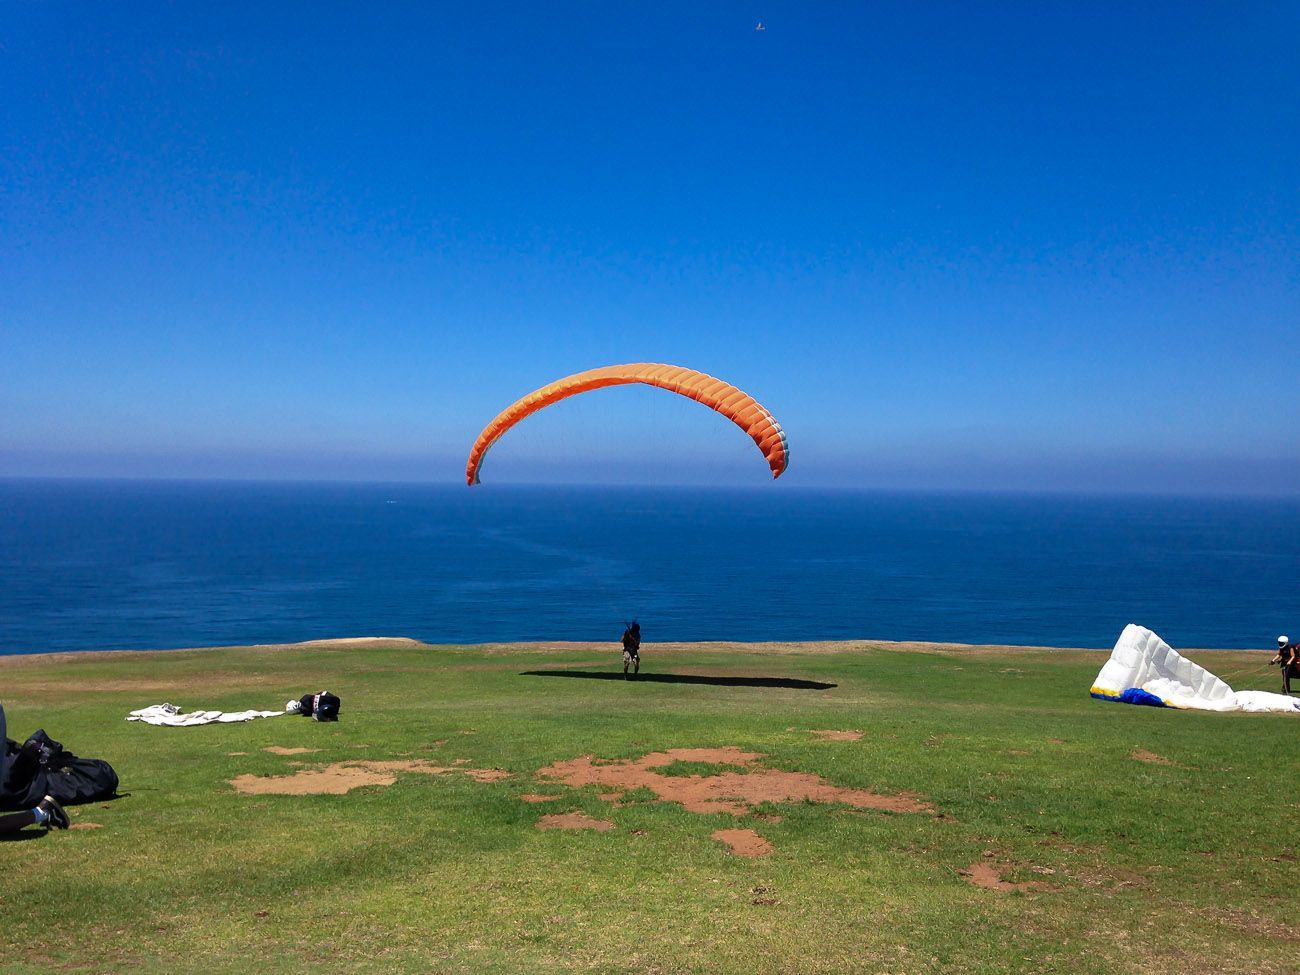 A glider with an orange parachute prepares to run off the cliff to take-off, one of the coolest outdoor activities San Diego has to offer.